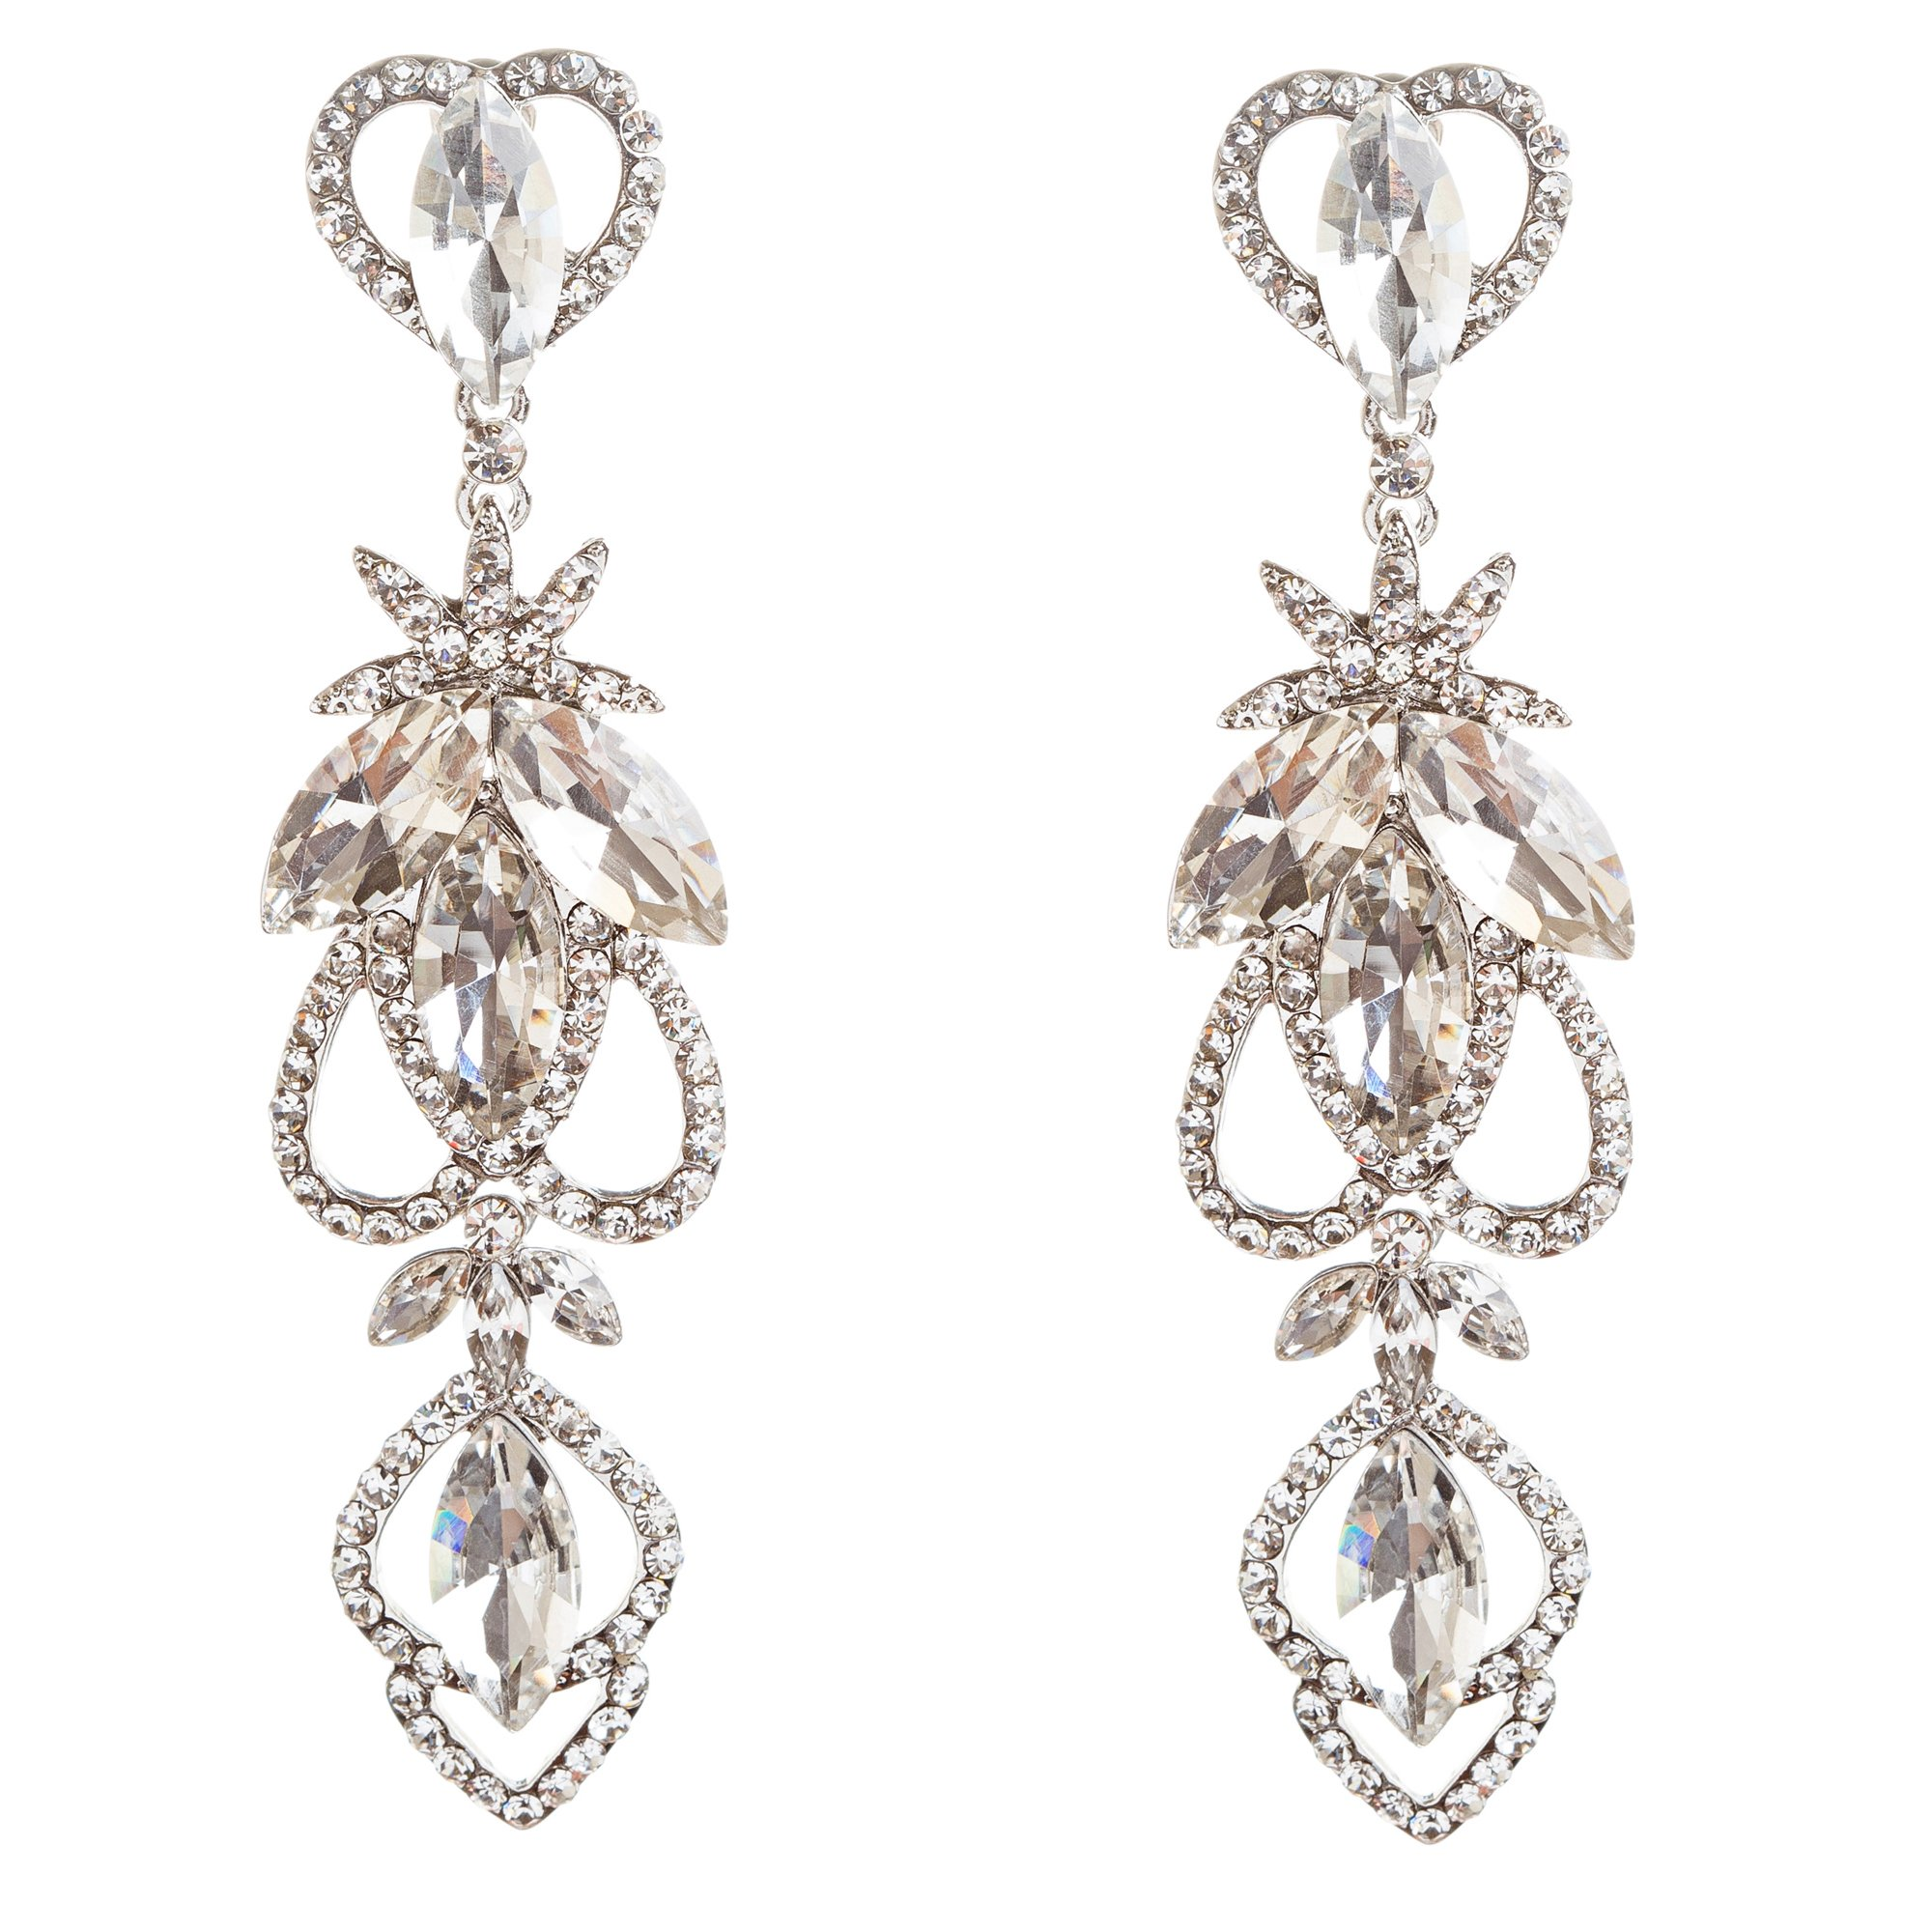 ACCESSORIESFOREVER Women Bridal Wedding Jewelry Crystal Rhinestone Delicate Intricate Earrings E715 SLV